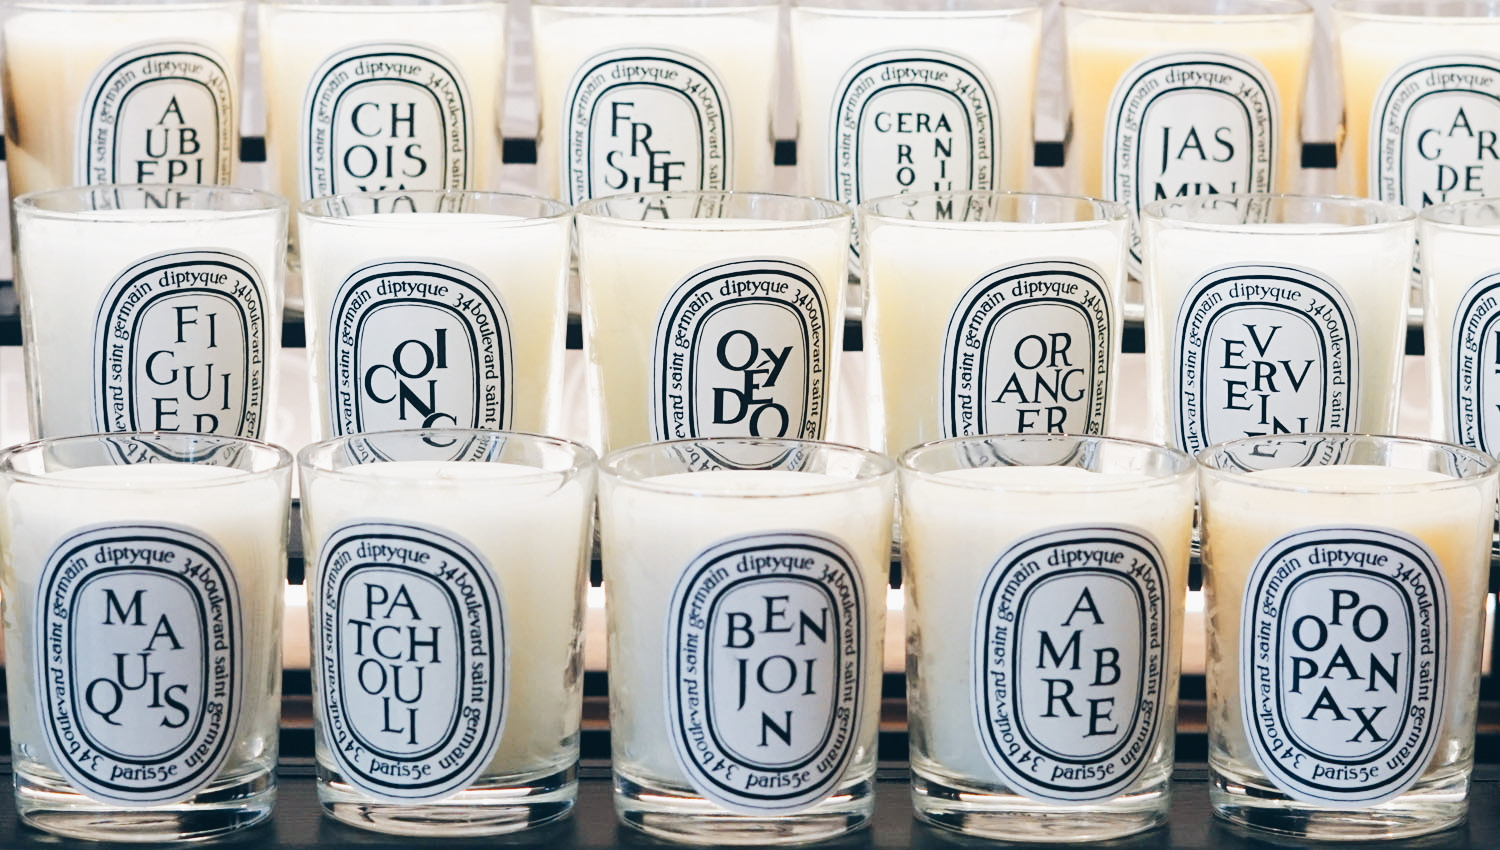 Diptyque Candles Lifestyle Blogger